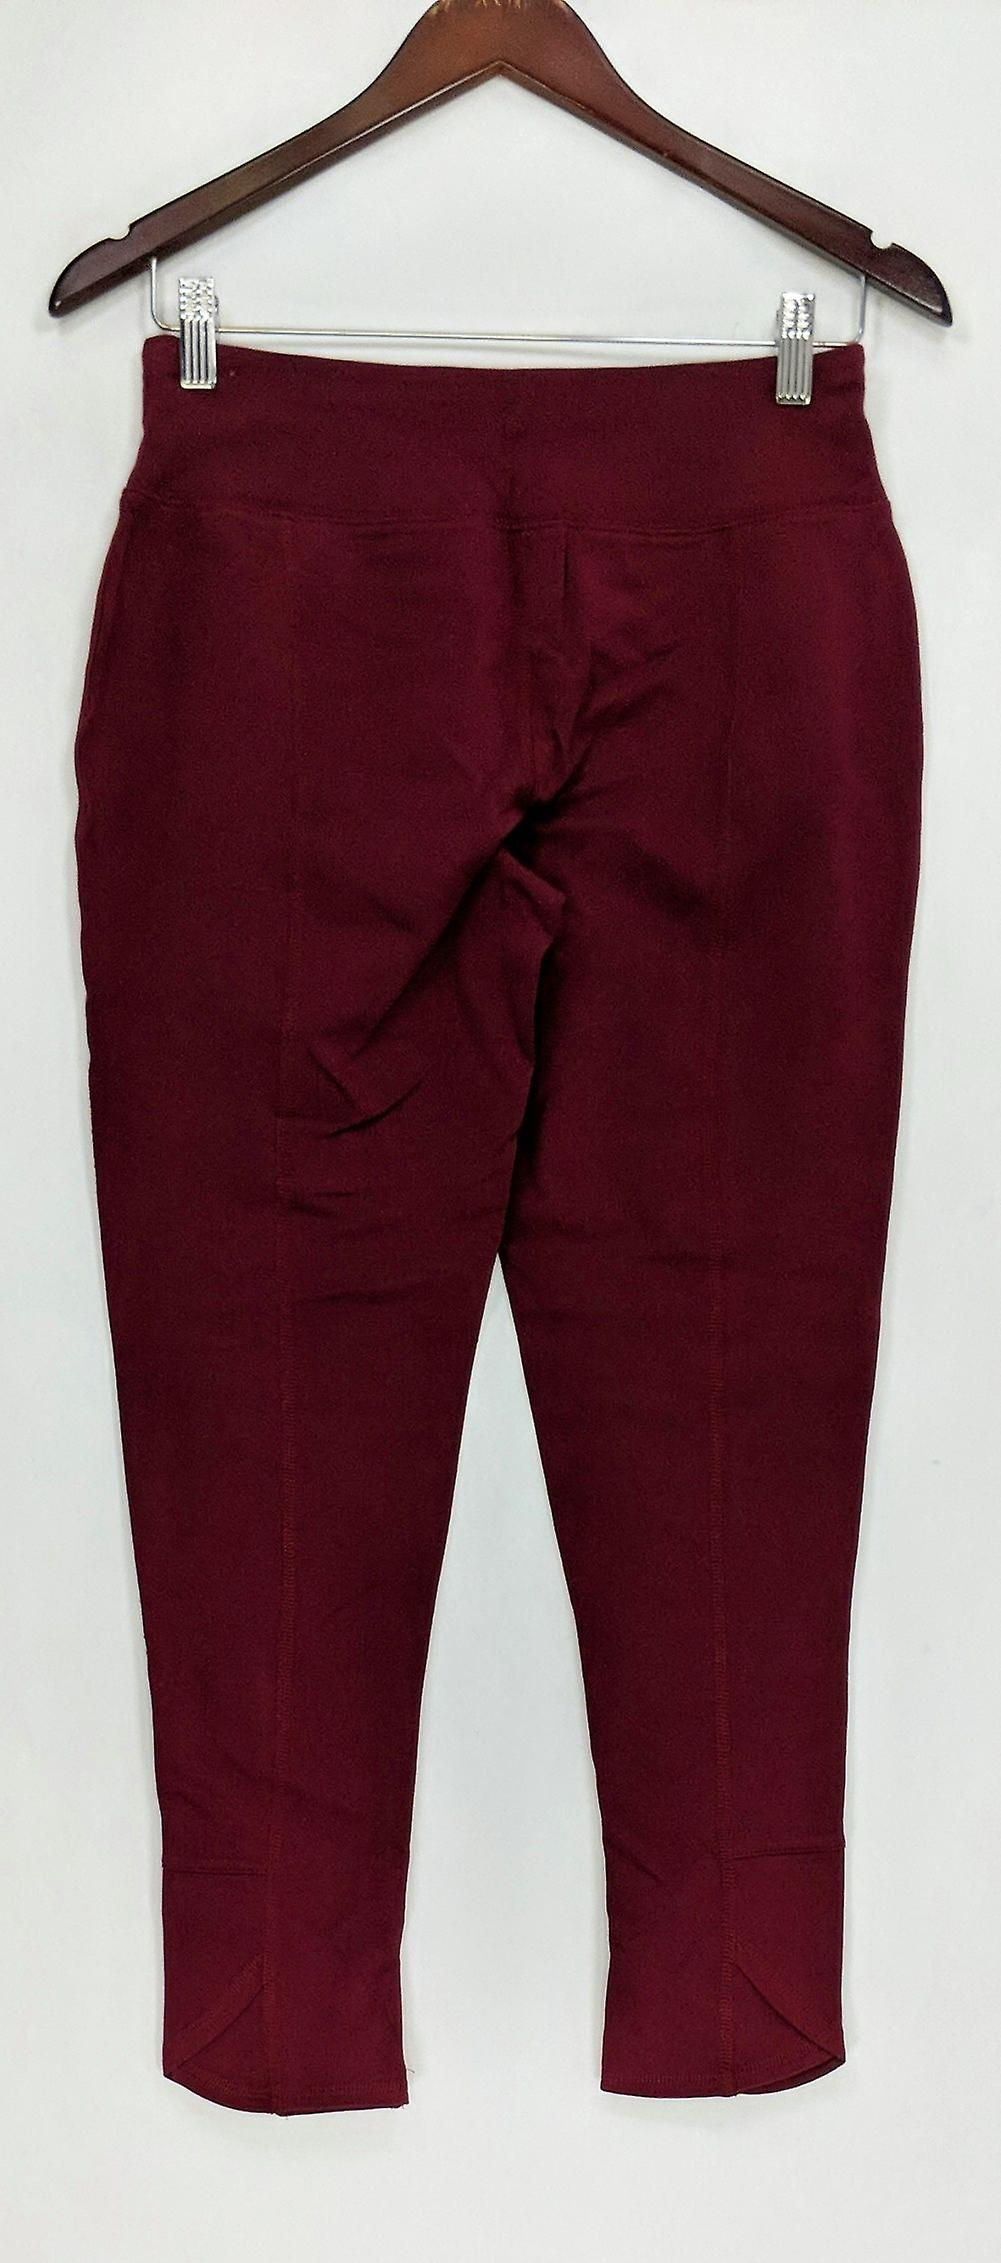 Denim & Co. Petite Leggings XSP Active Pull-On Knit Burgundy Red A294038 vuZDKb